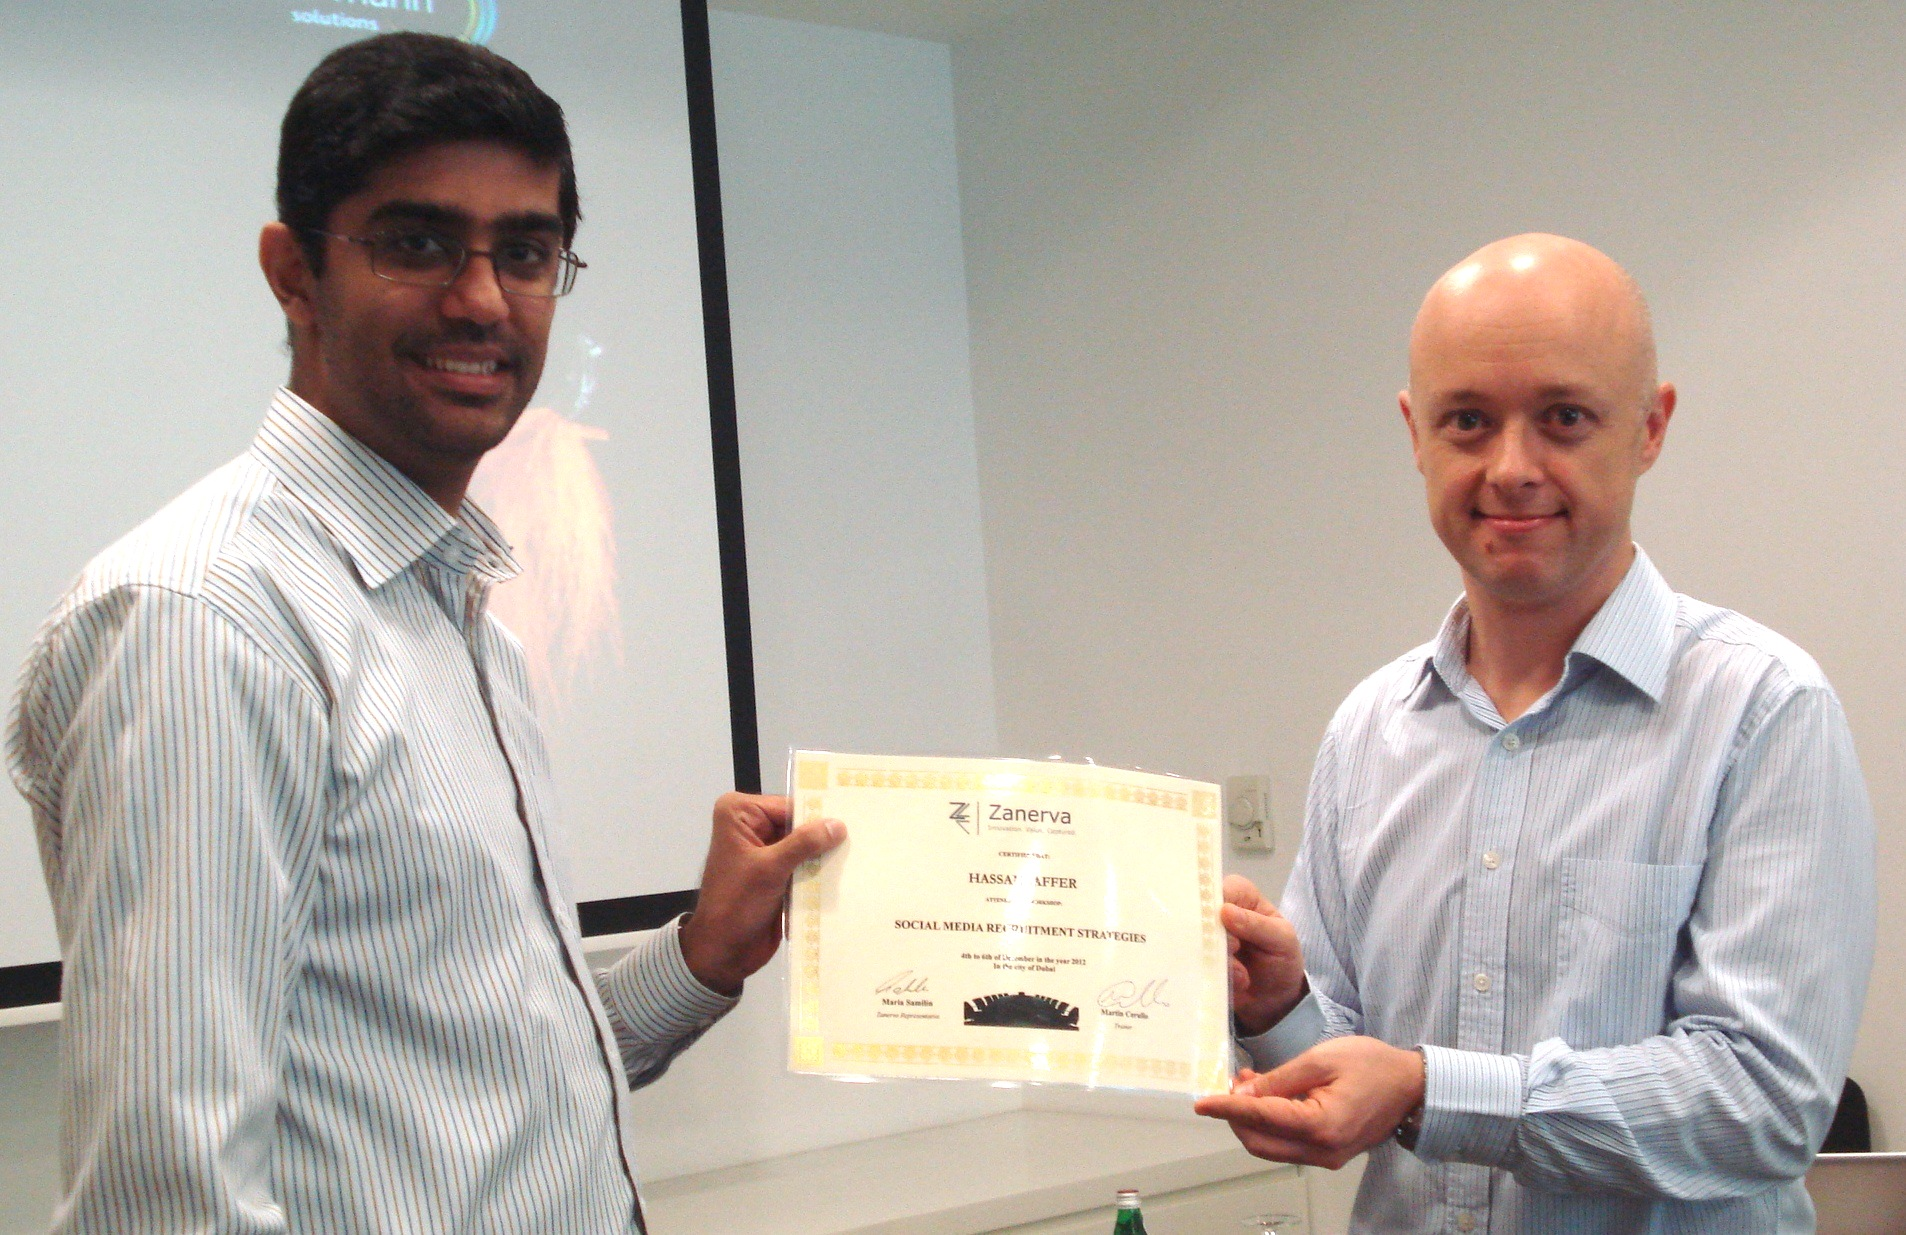 Hassan Jafferreceiving his certificate of workshop participation from Martin Cerullo for attending the Social Media Recruitment Workshop in Dubai